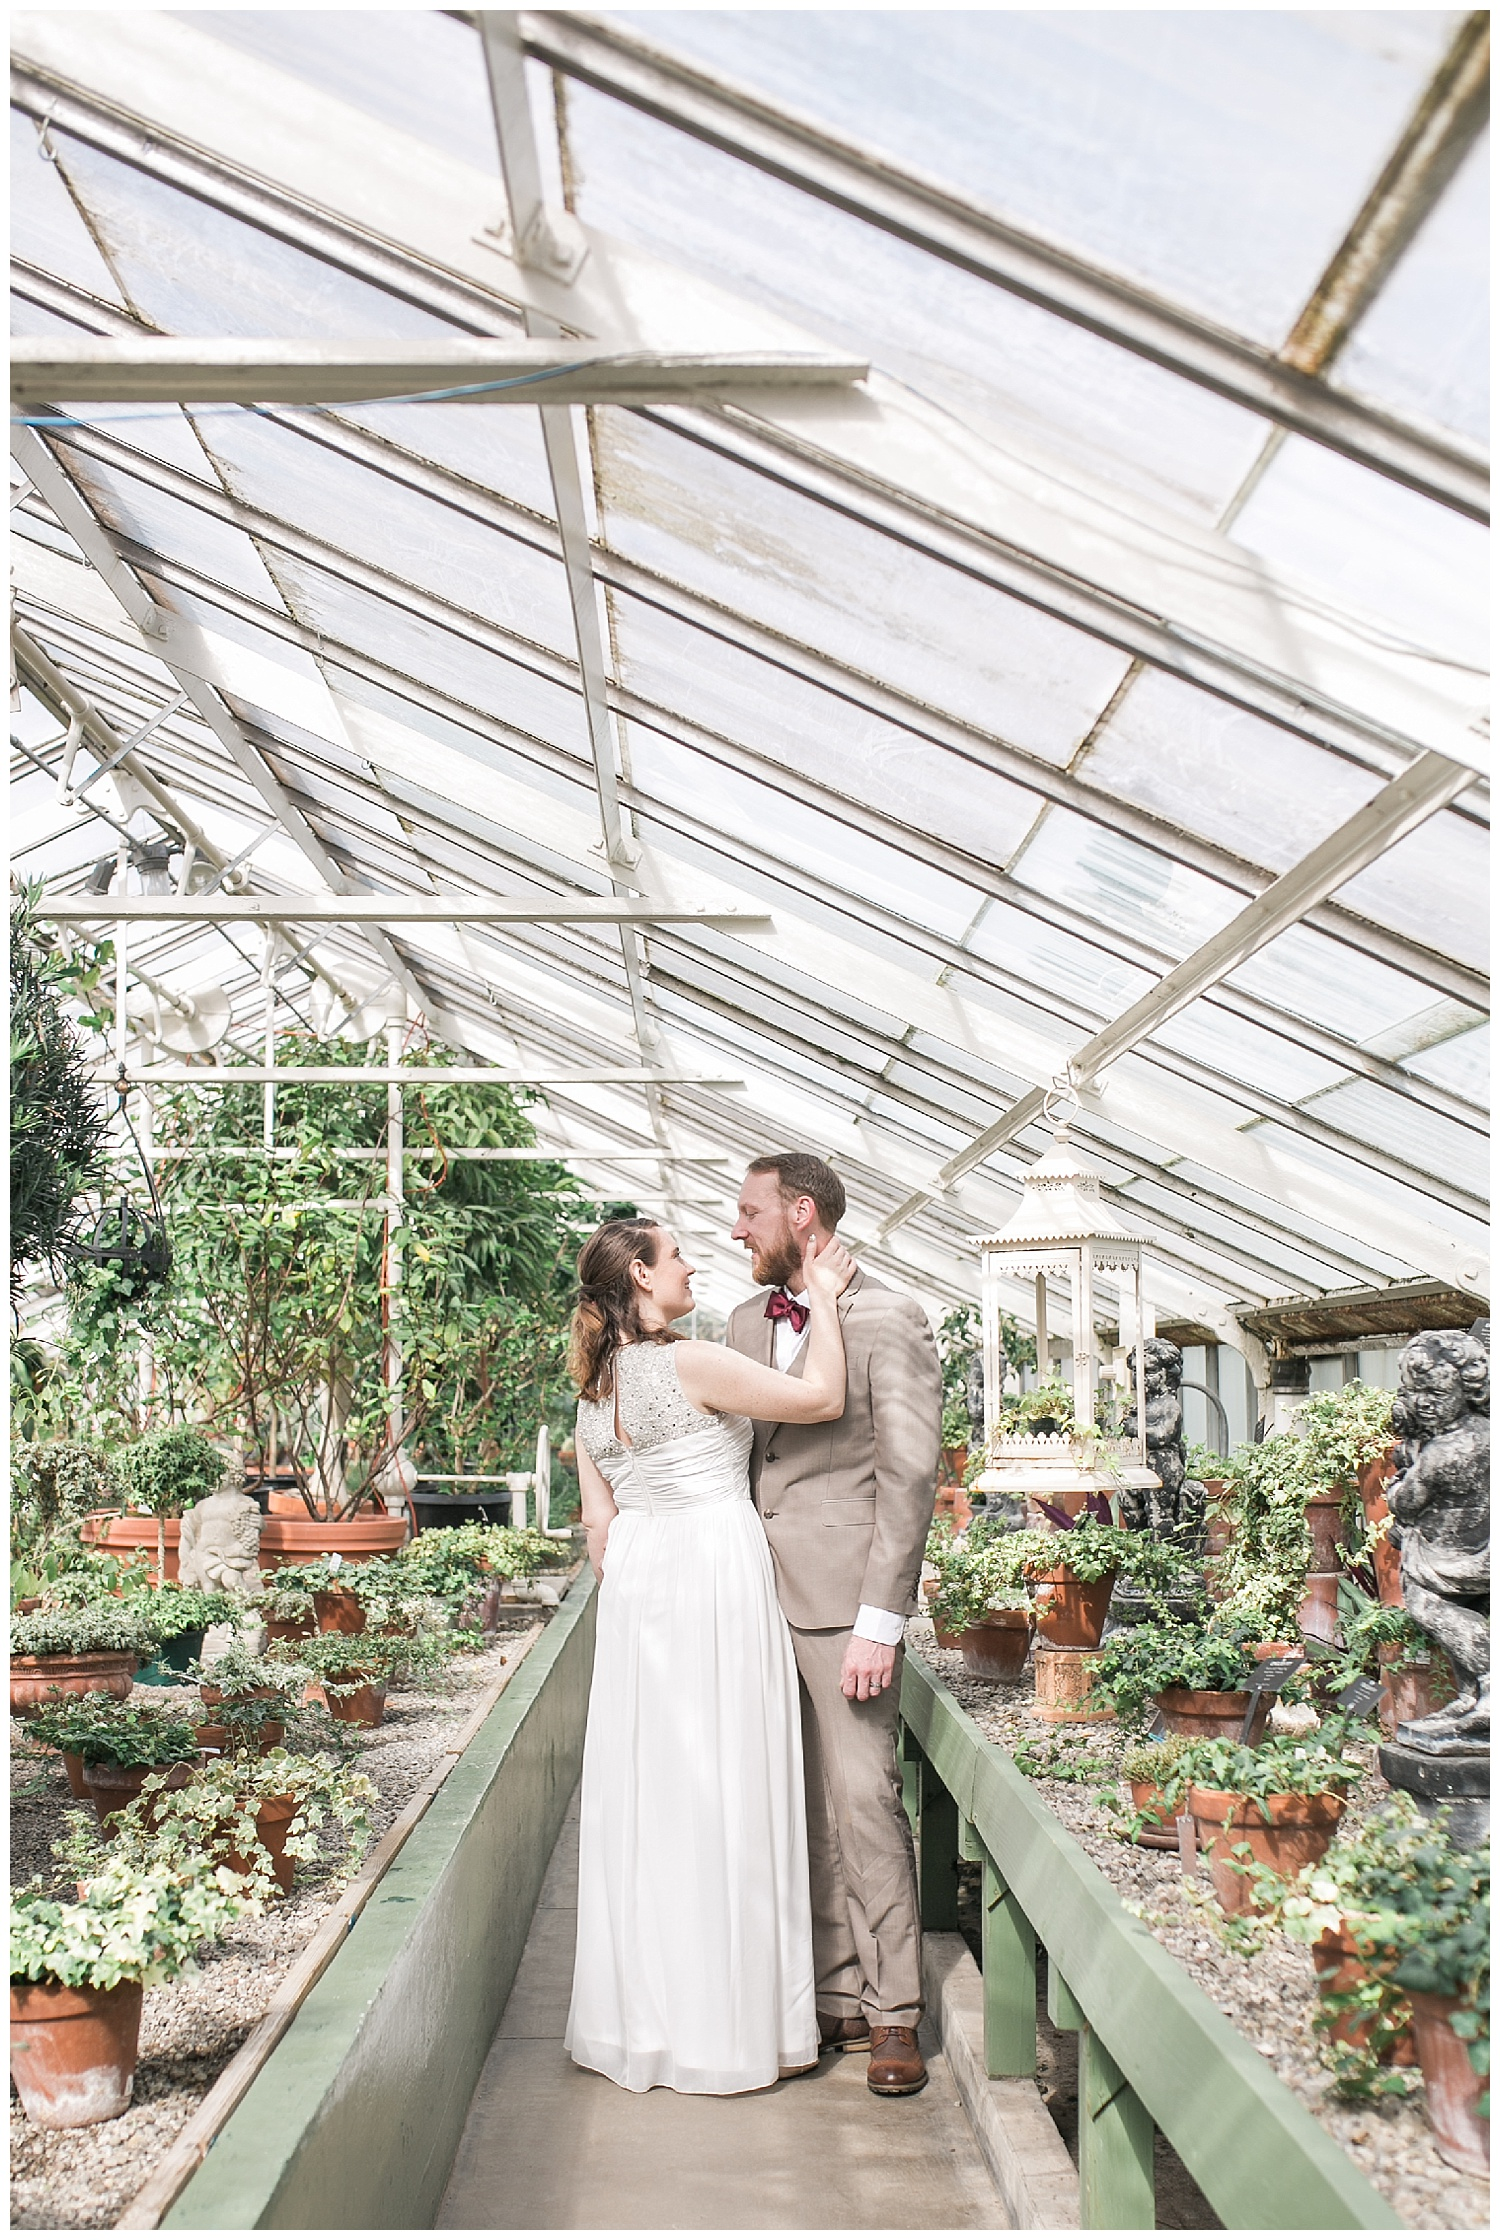 Buffalo Botanical gardens wedding - Buffalo NY Lass and Beau 87.jpg